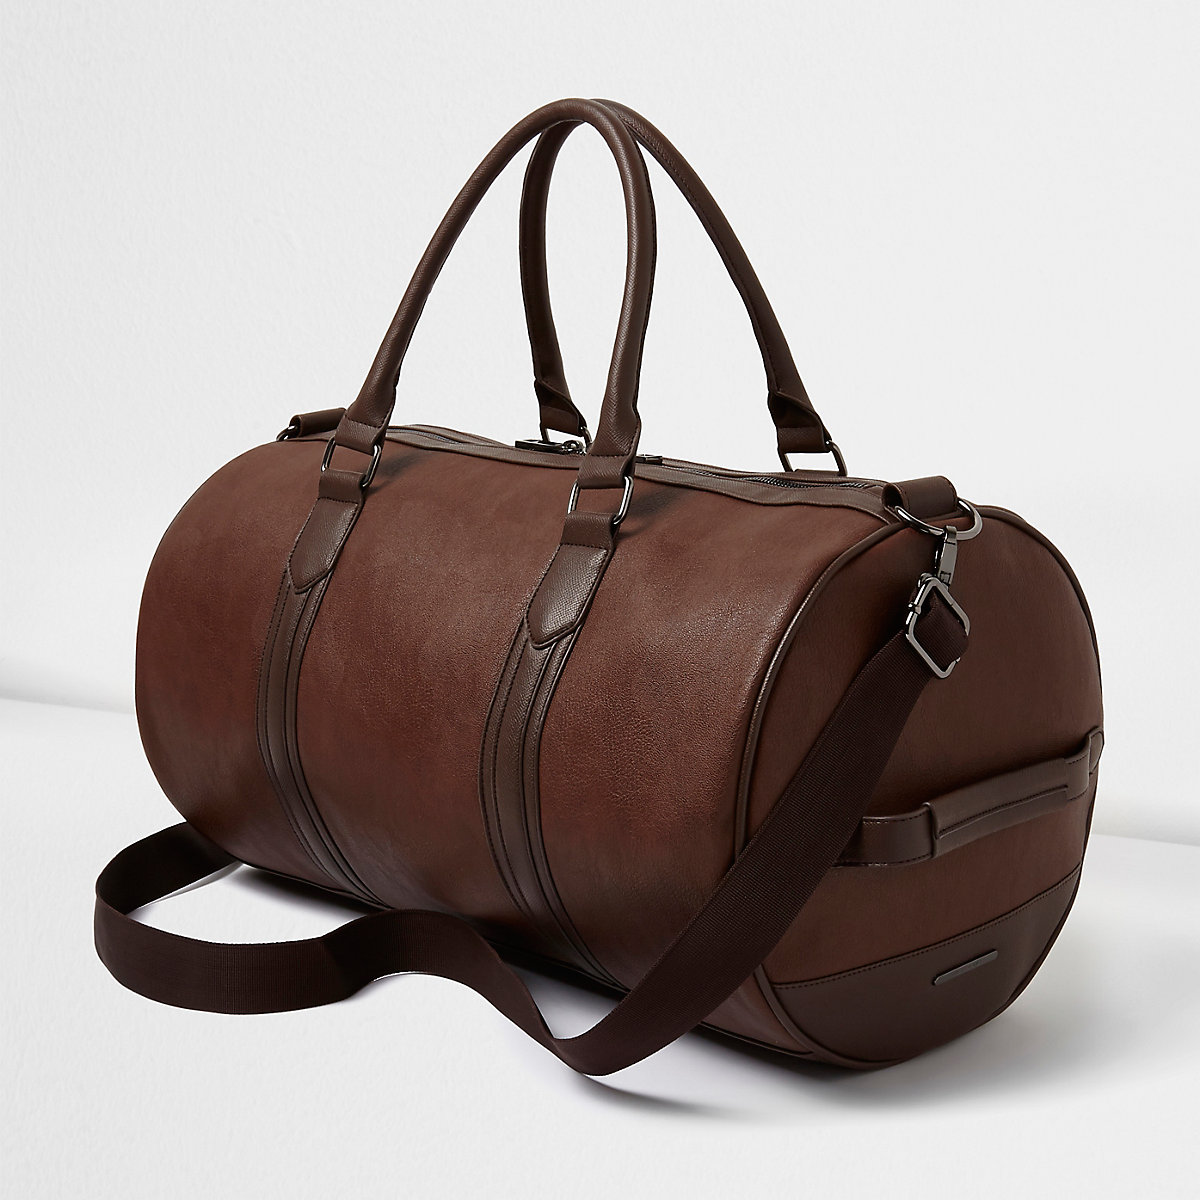 Tan faux leather holdall